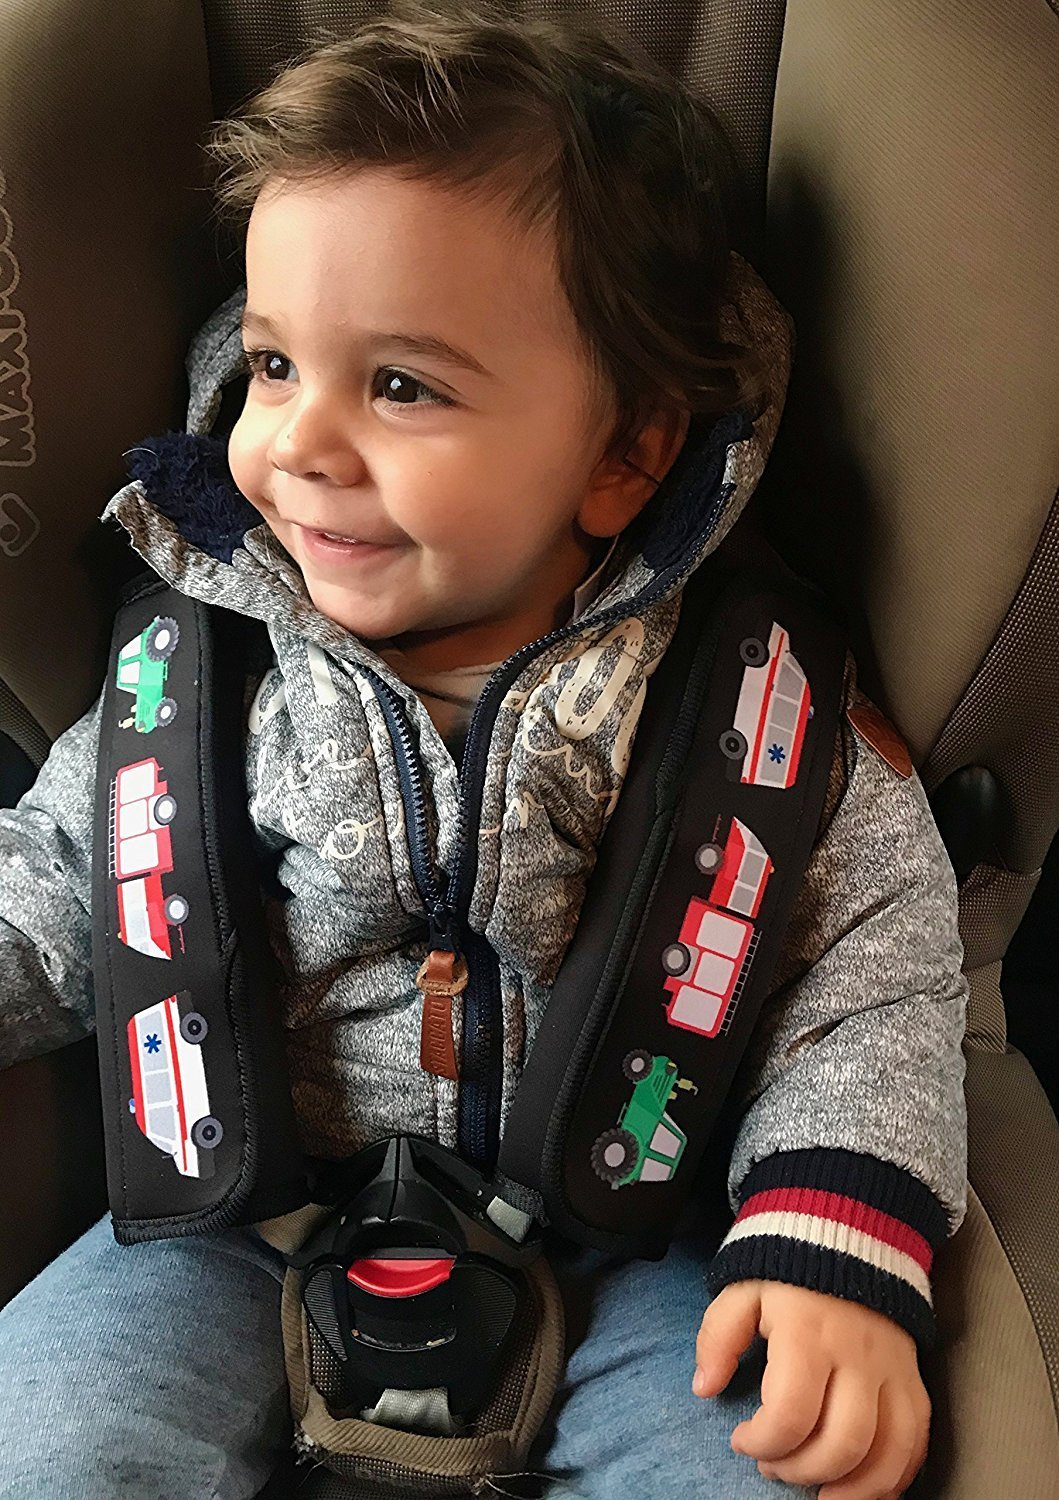 /by Heckbo 2x Car Seat Belt Cover Shoulder Pad Car Seat Belt Shoulder Pad Pads For Boys//Men With Fire Brigade Tractor Ambulance/